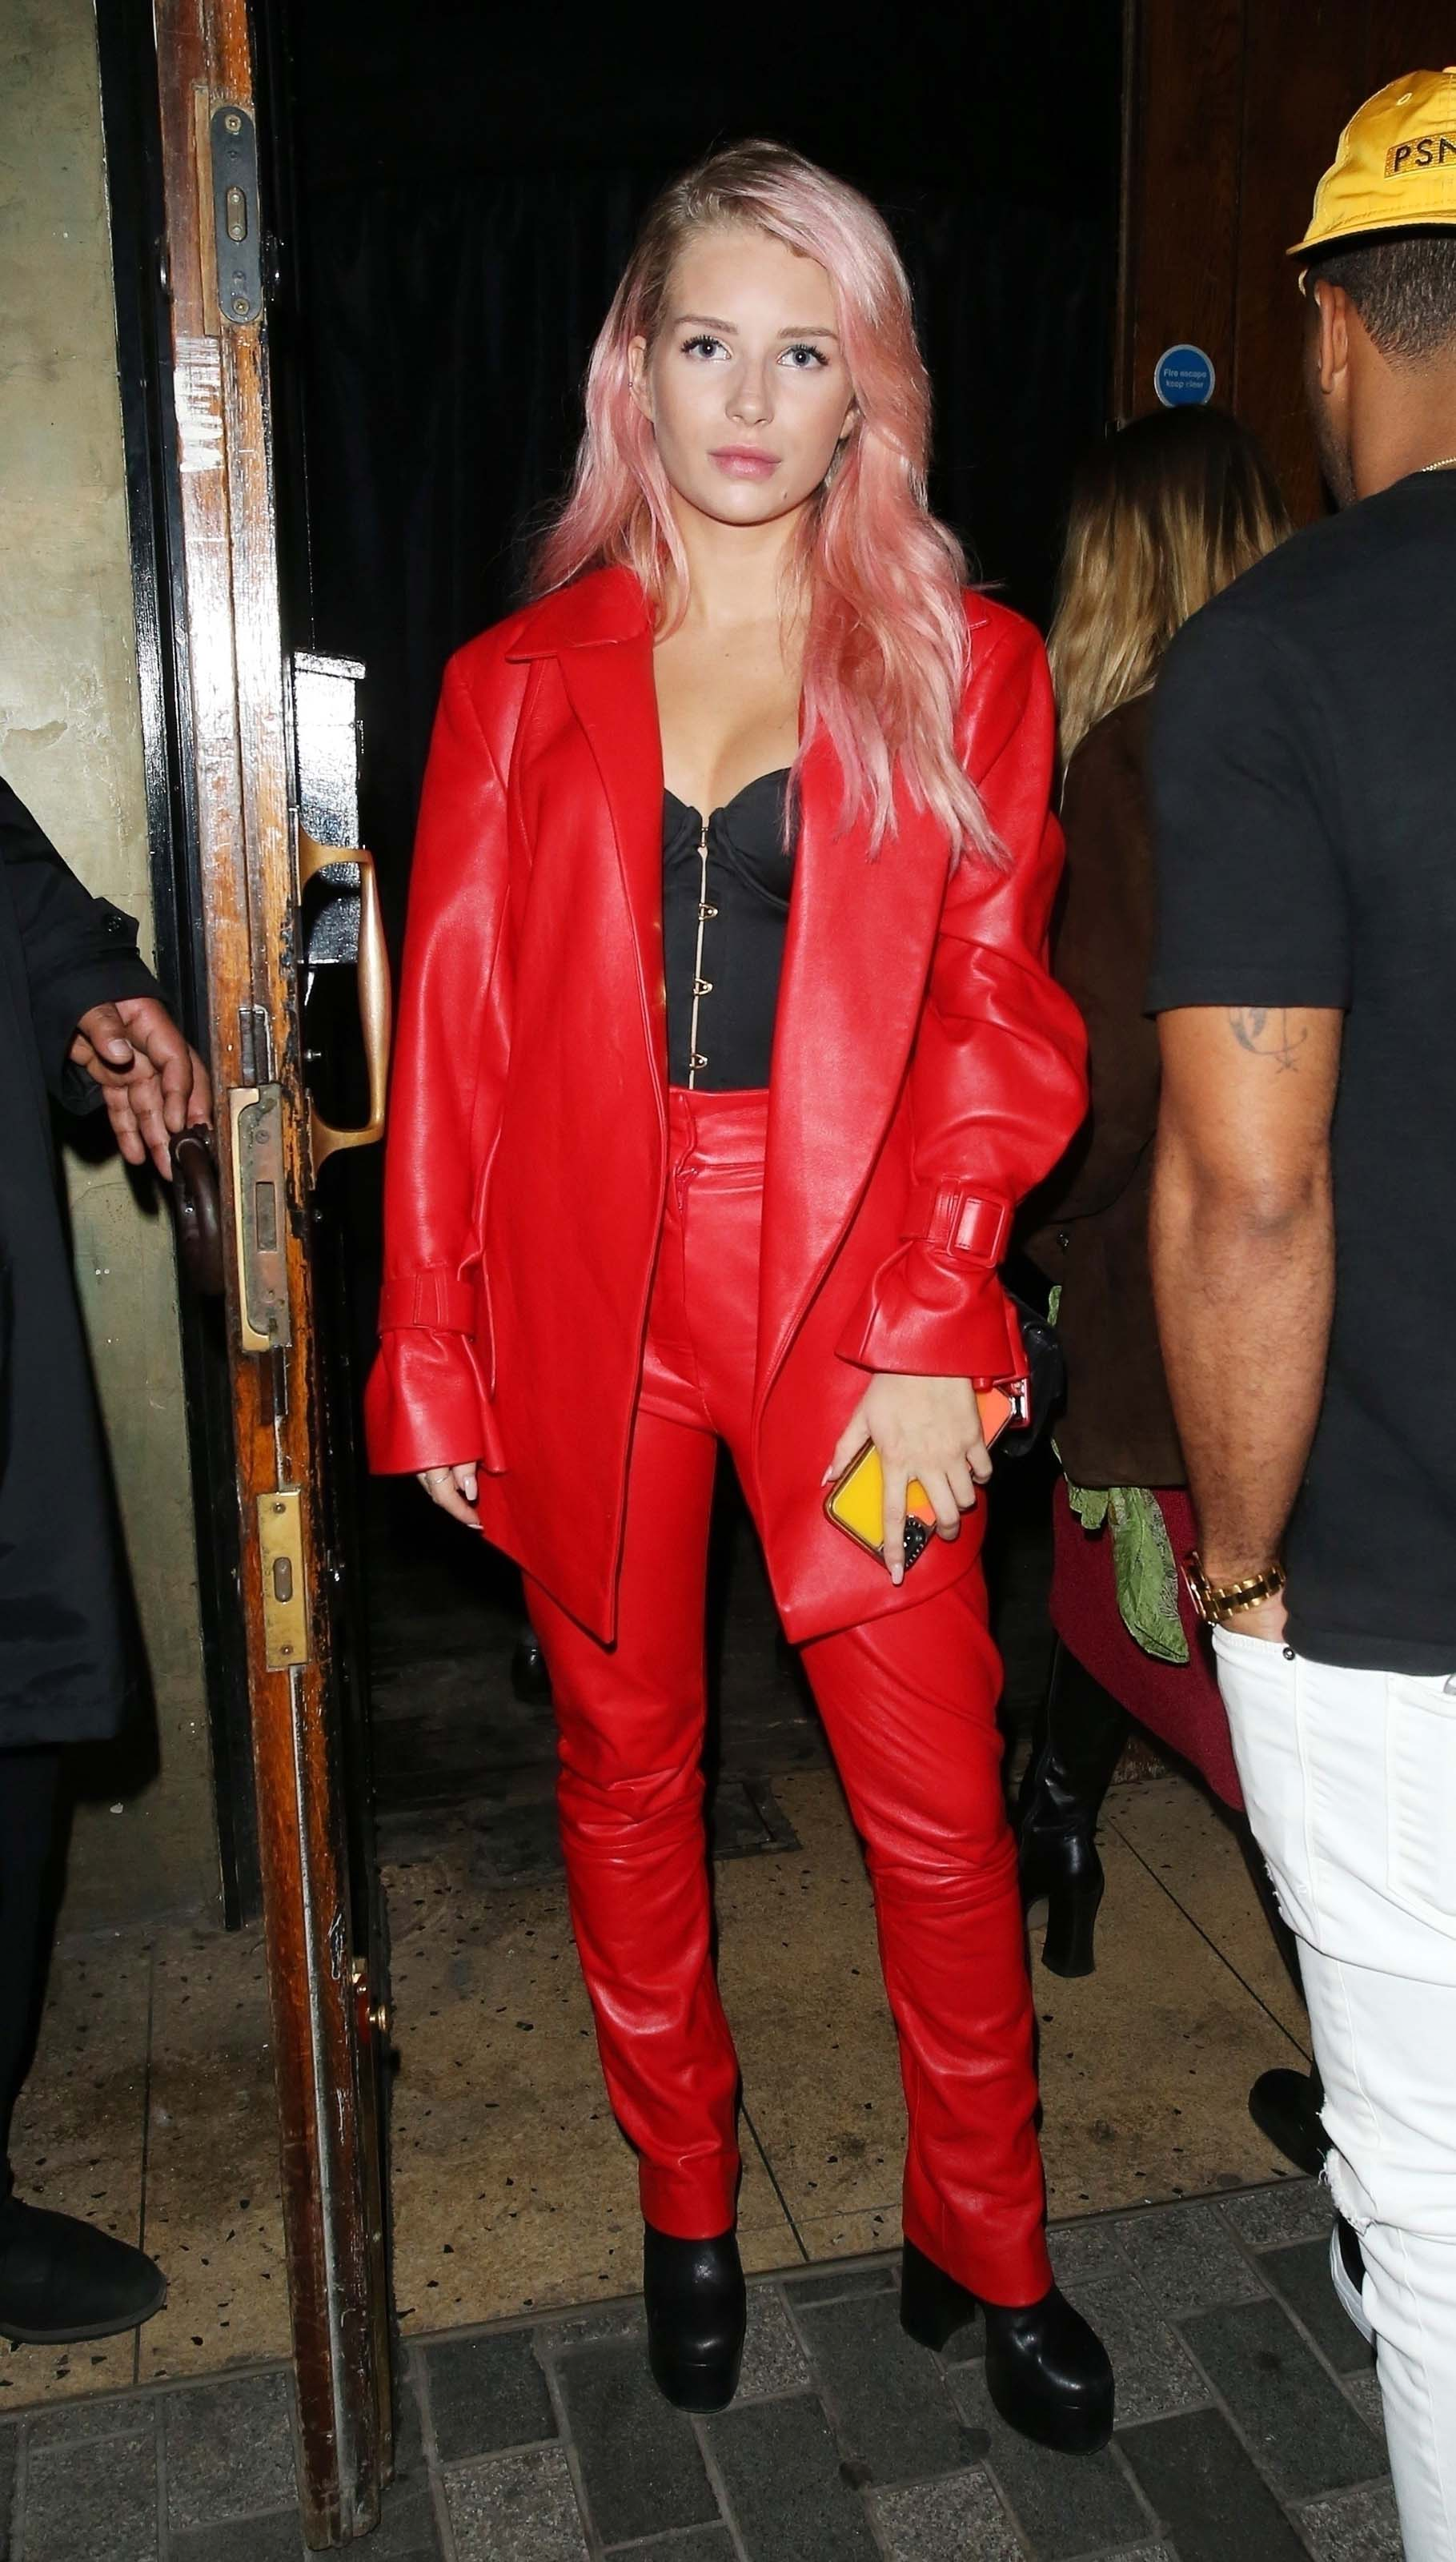 Lottie Moss is seen here at The Box Night Club